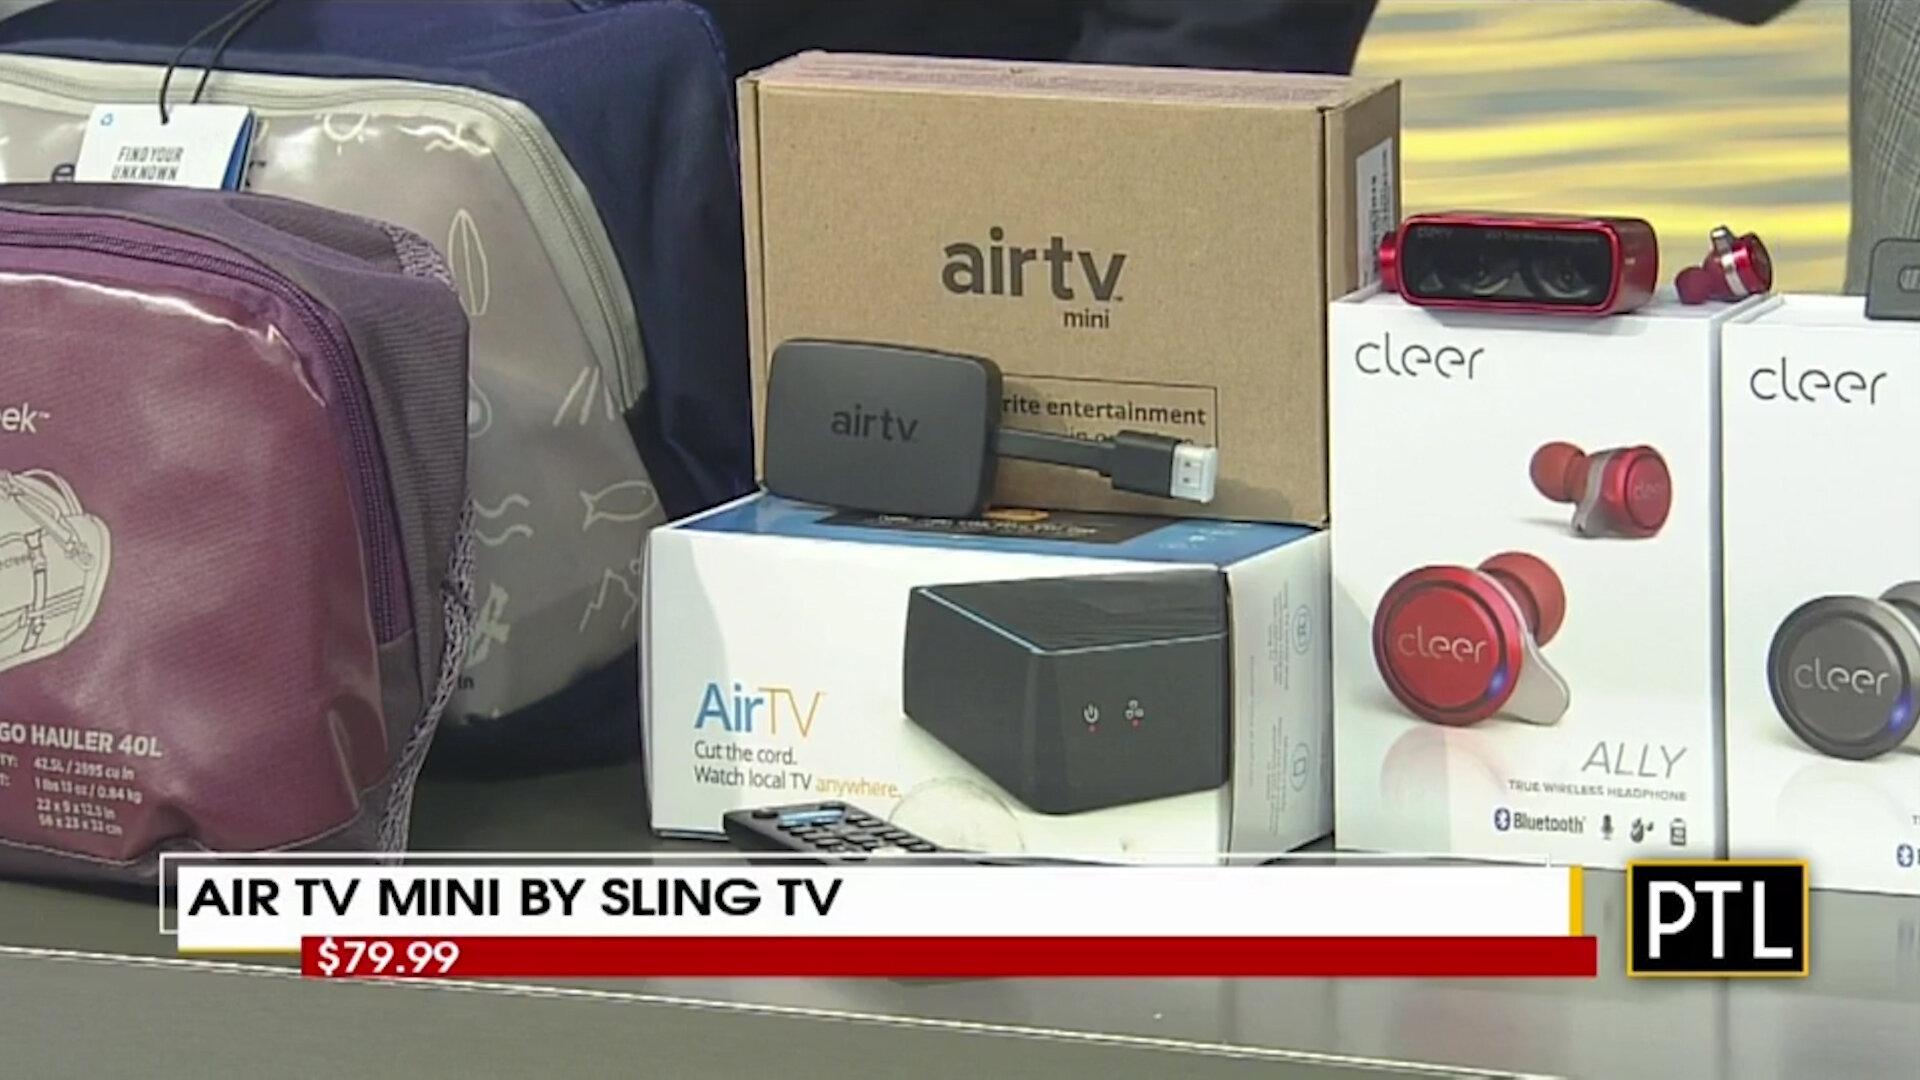 AIR TV MINI by SLING TV - $79.99Shop Now